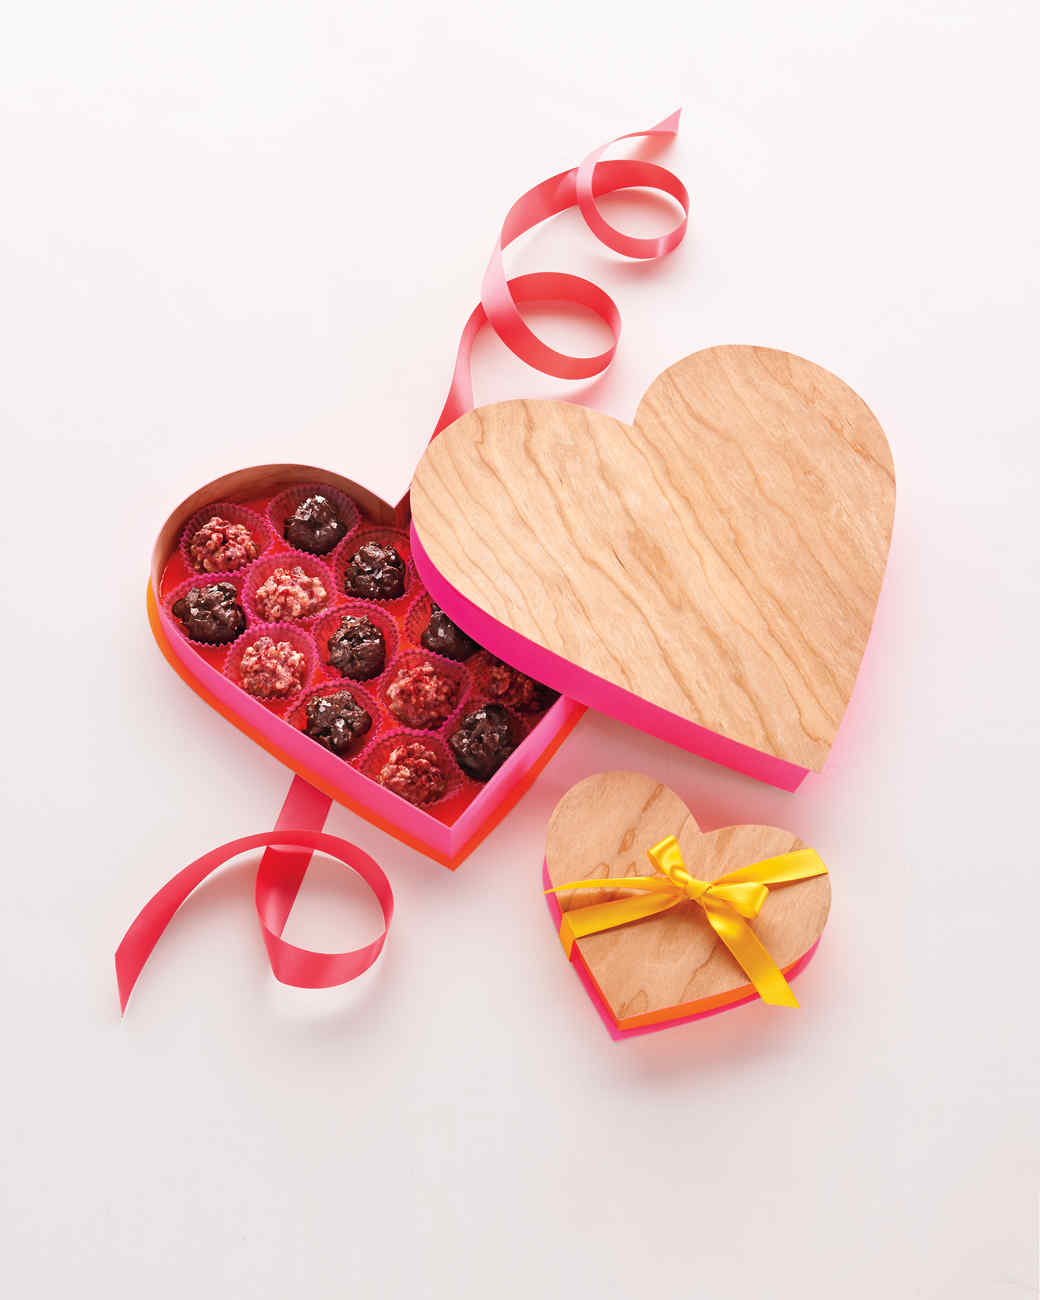 valentines-day-01-heart-boxes-0078-d111638.jpg